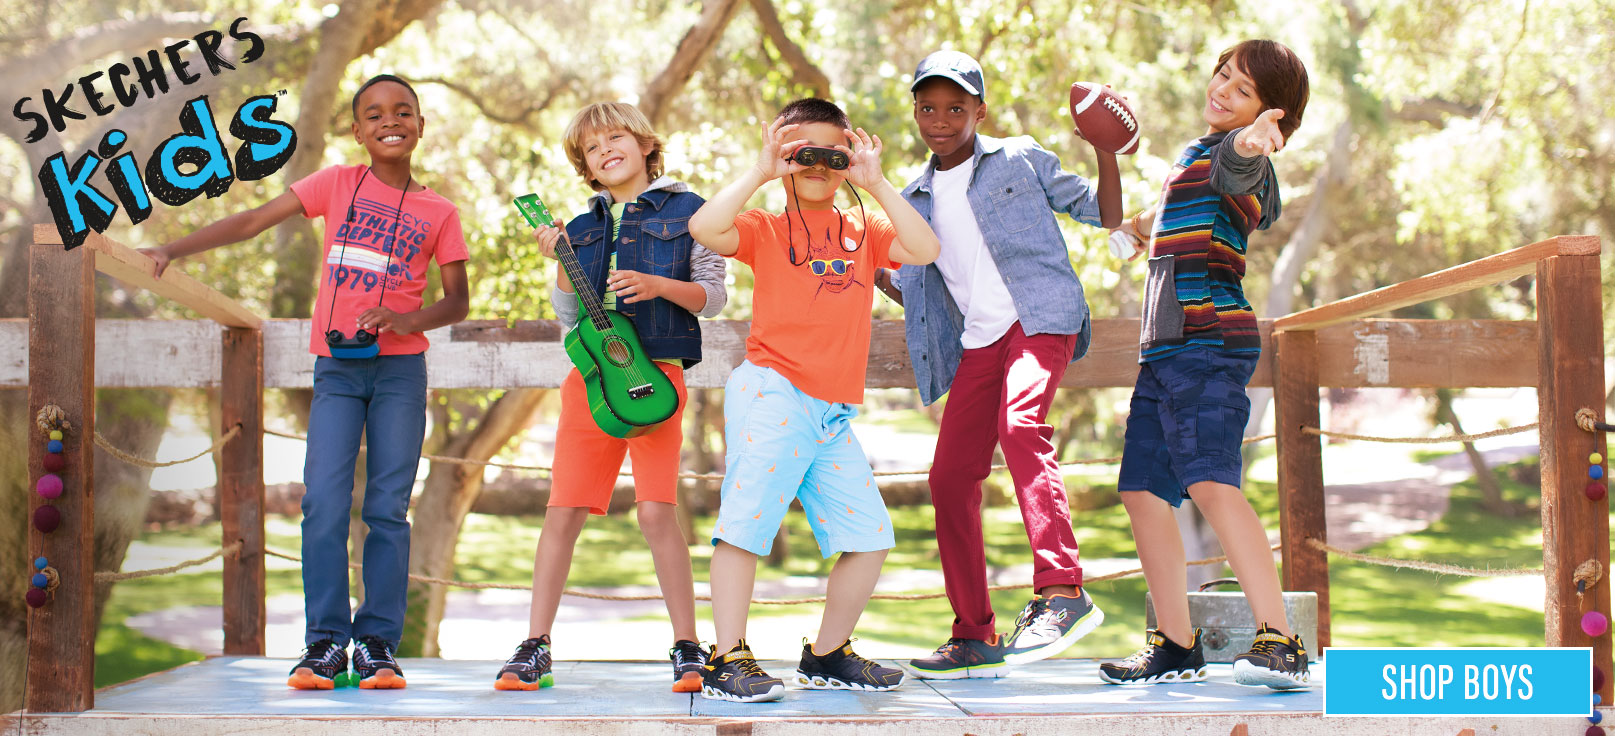 Shop for Boys Skechers Shoes on Skechers.com including S-Lights, Memory Foam, Athletic and Casual shoes.  Sizes for Toddler, Pre School and Grade School, perfect for sport, play or casual wear.